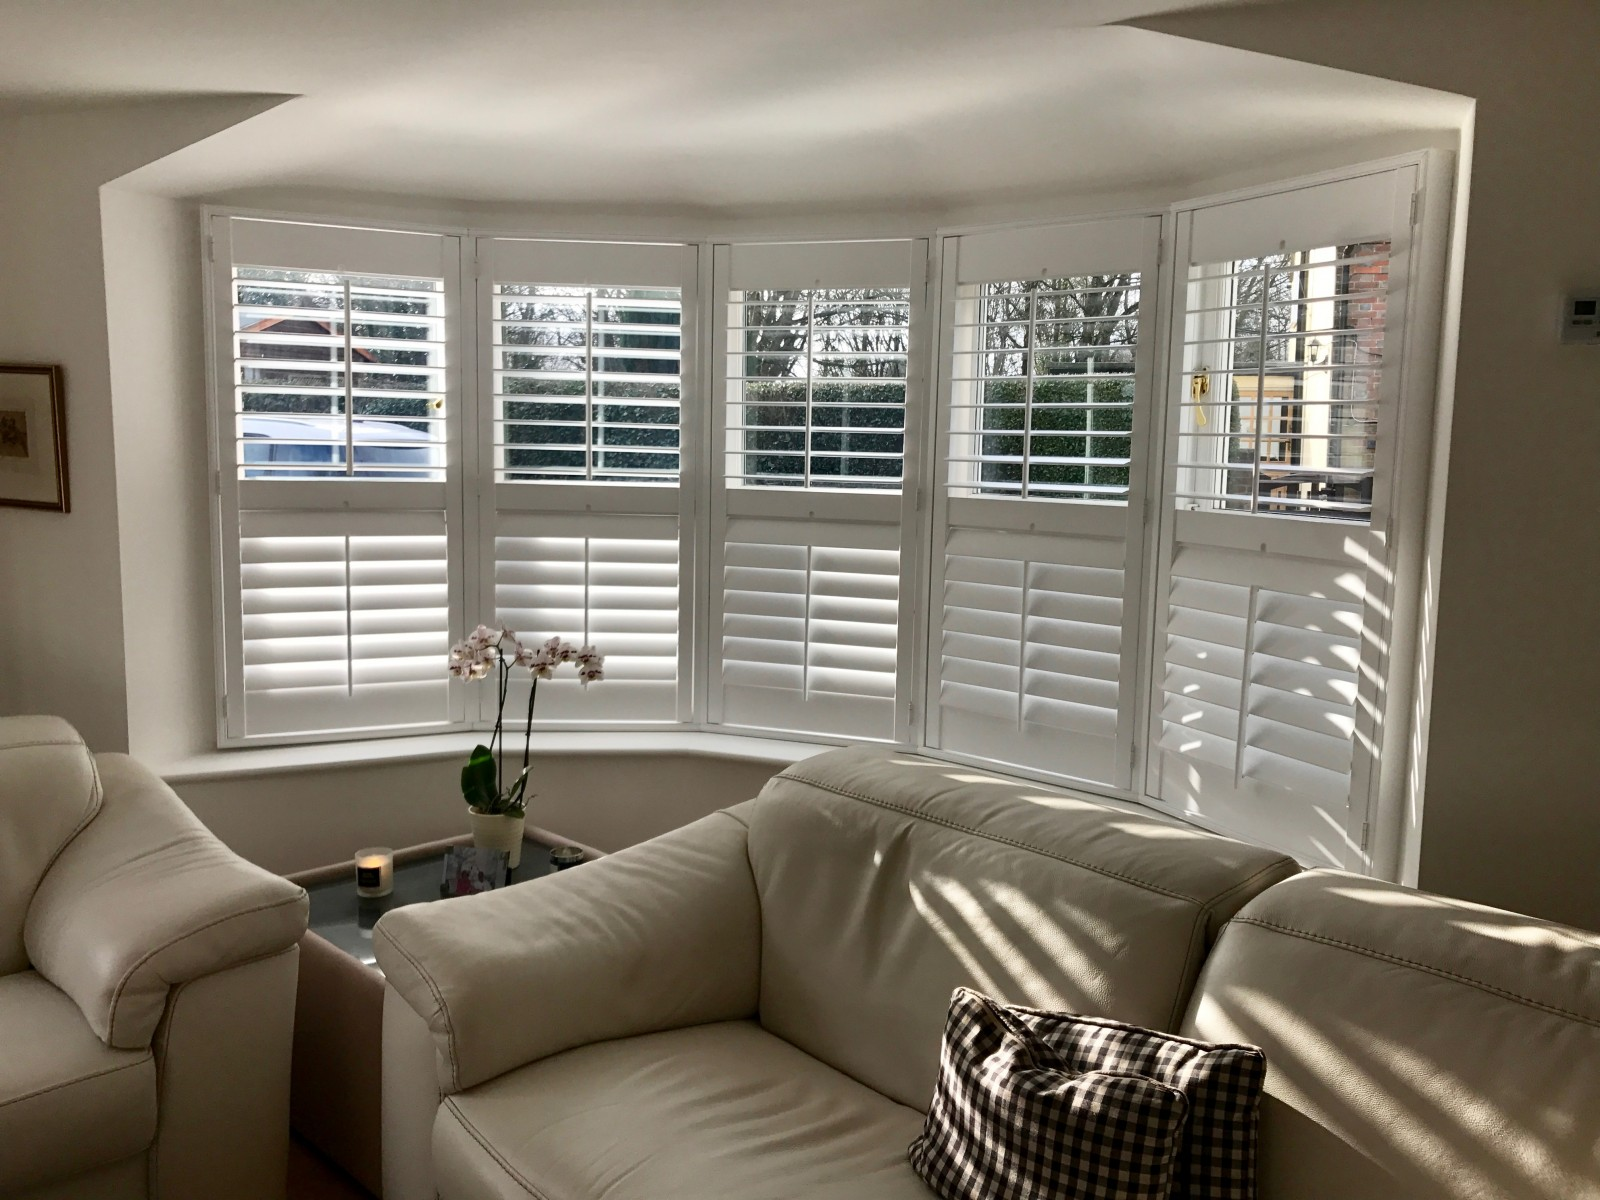 Types Of Shutters A Guide To The Different Types Of Shutters By Shuttersouth